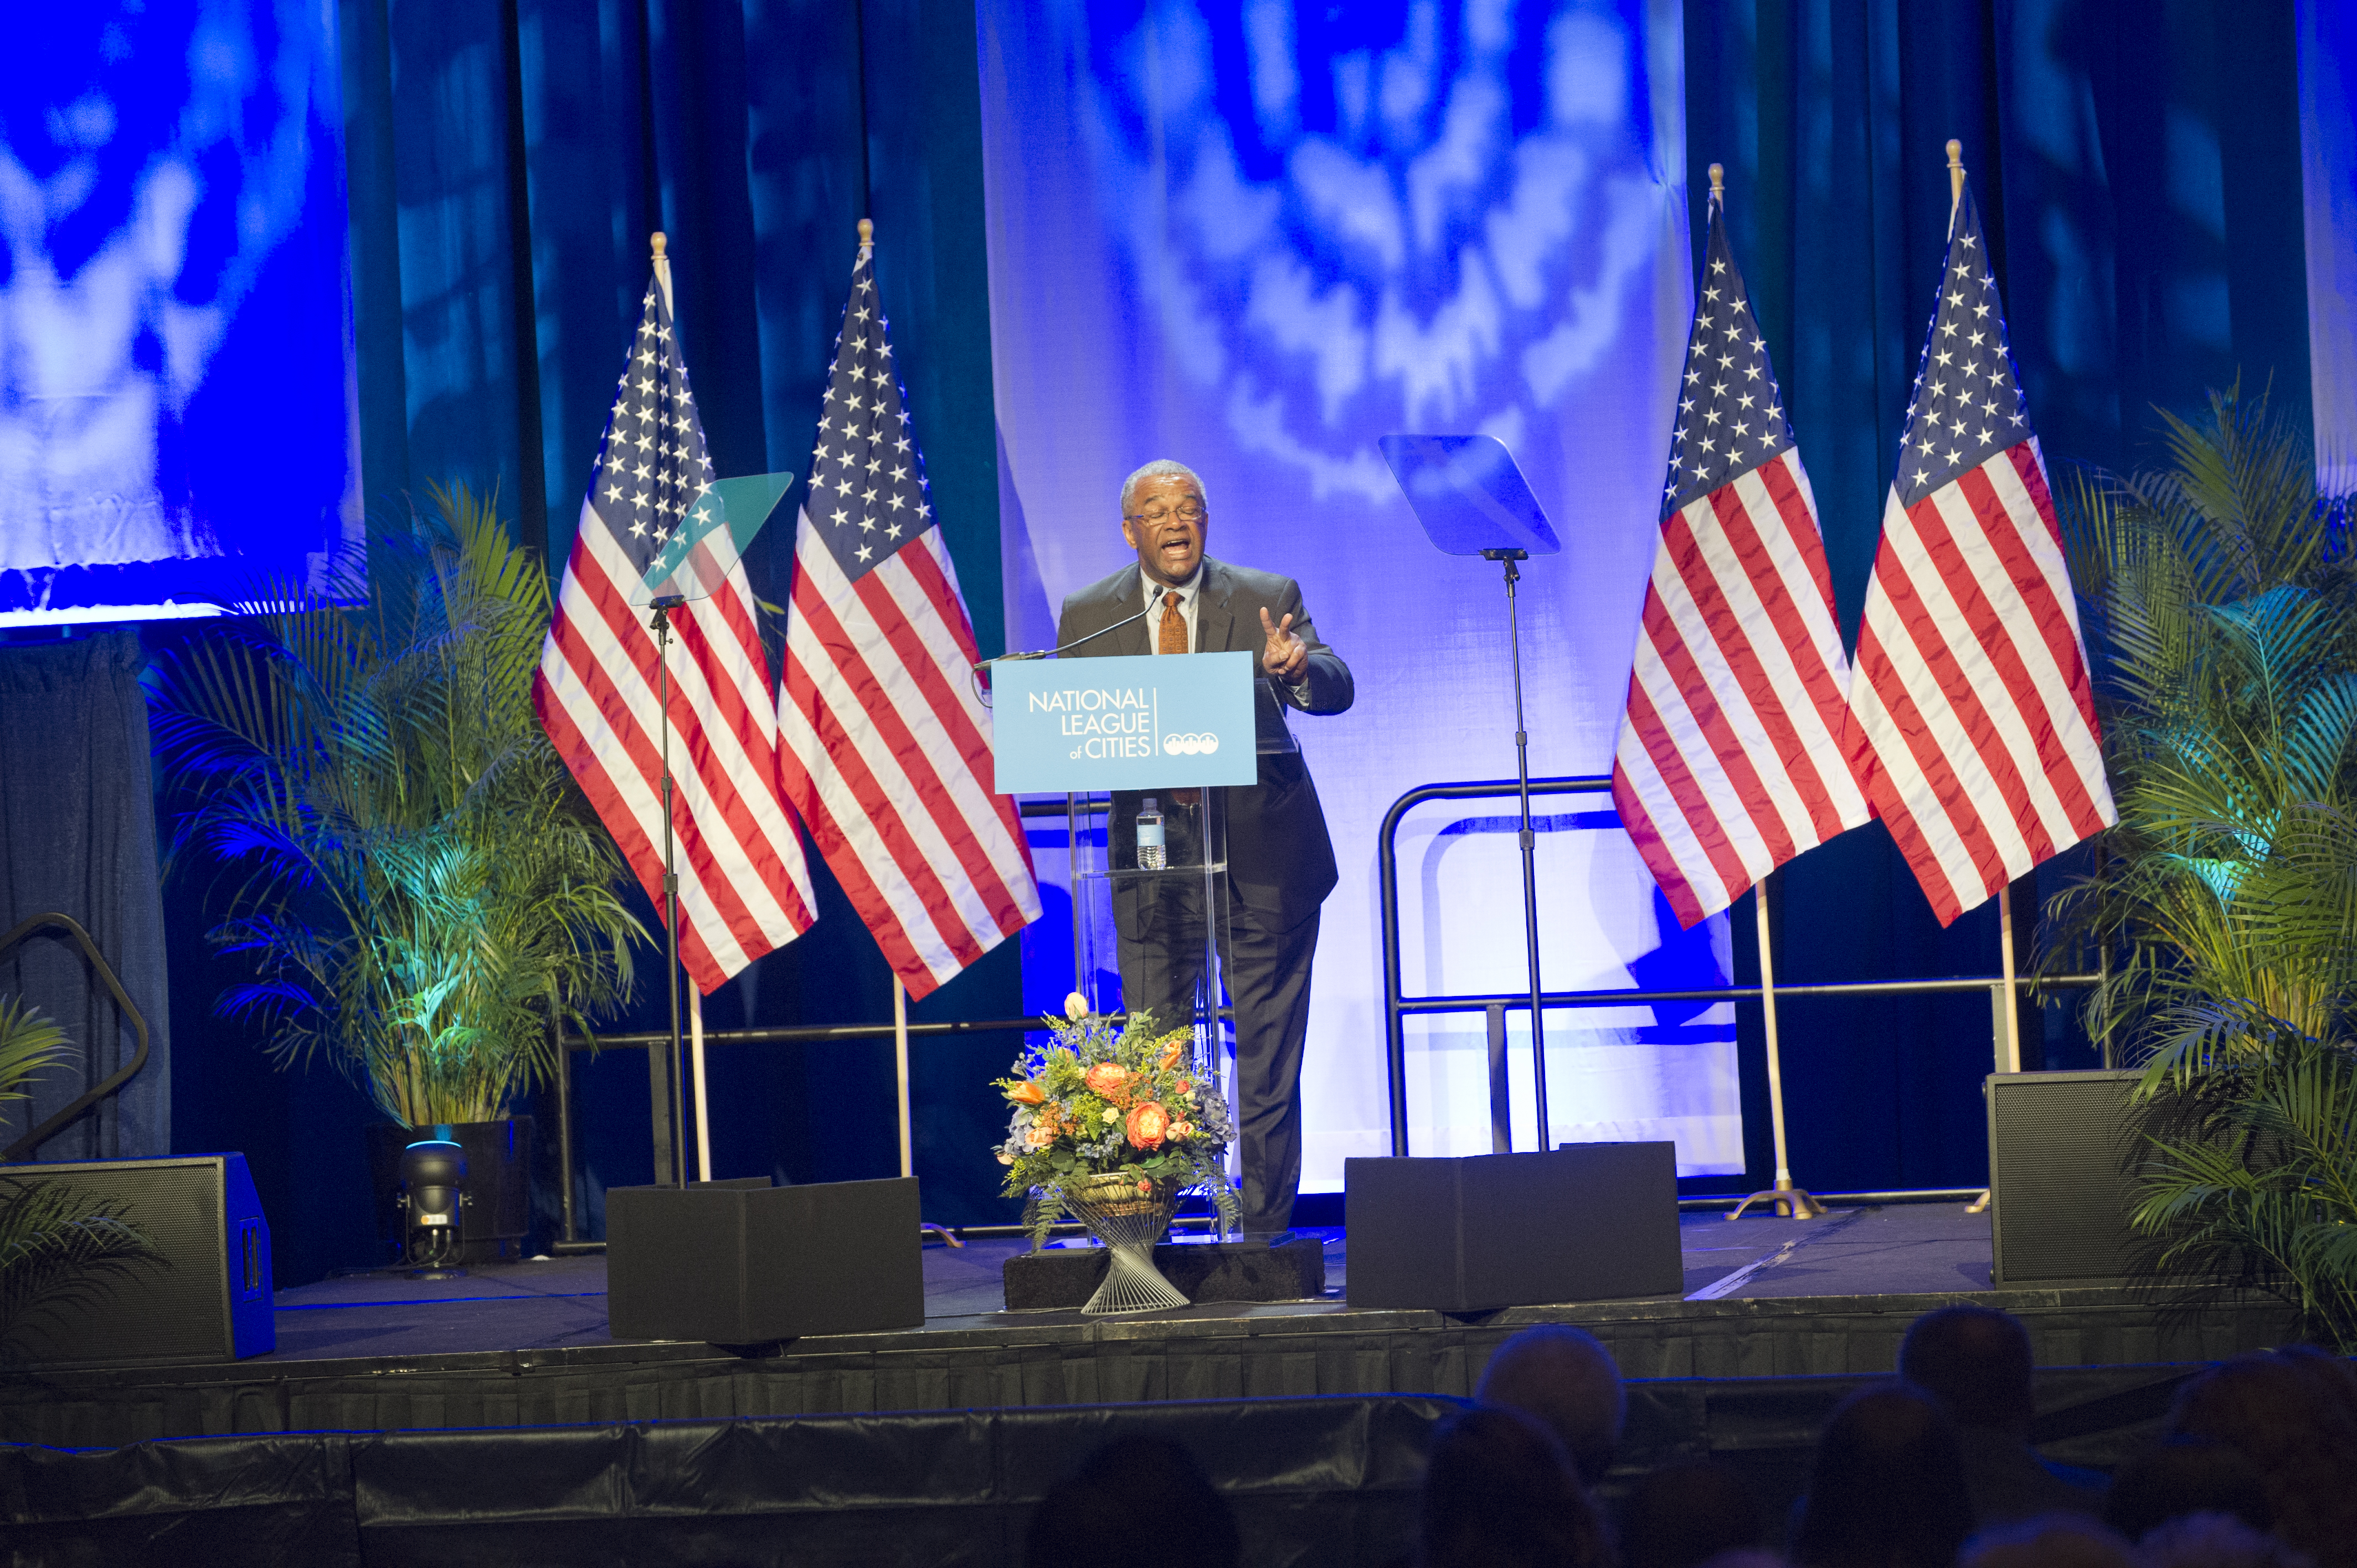 Activities at the] National League of Cities Congressional City Conference, Marriott Wardman Park Hotel, Washington, D.C., [with First Lady Michelle Obama, HUD Deputy Secretary Ron Sims among the speakers